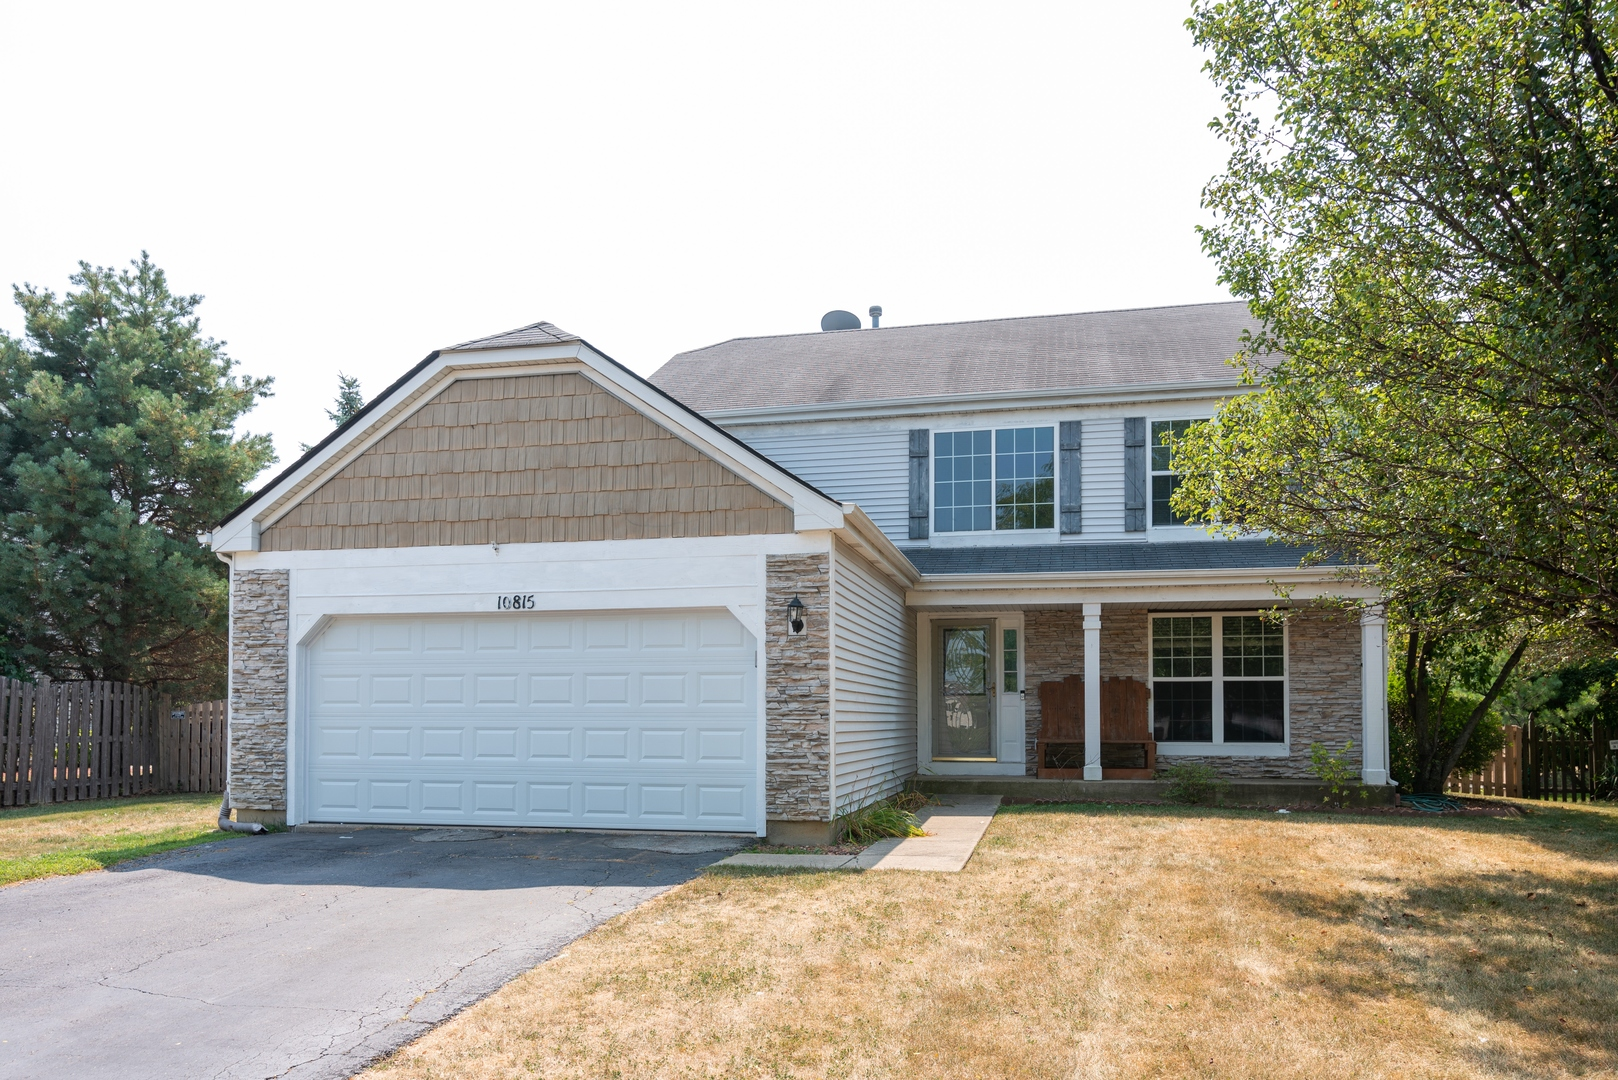 Photo for 10815 Grand Canyon Avenue, Huntley, IL 60142 (MLS # 10824015)